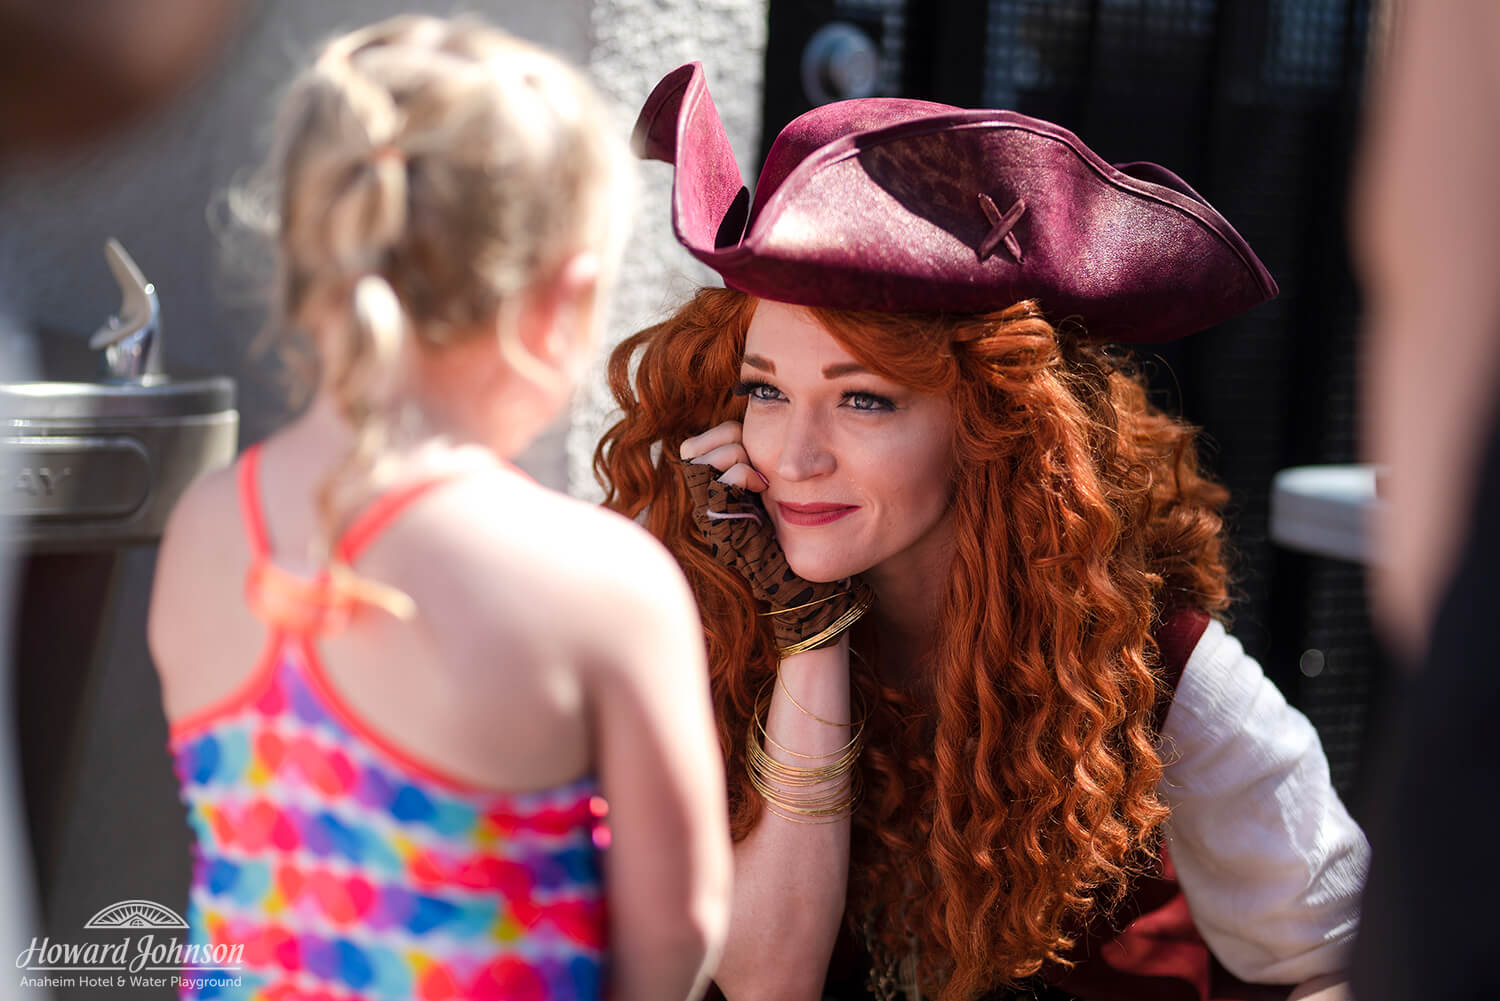 a woman dressed as a pirate smiles at a little girl